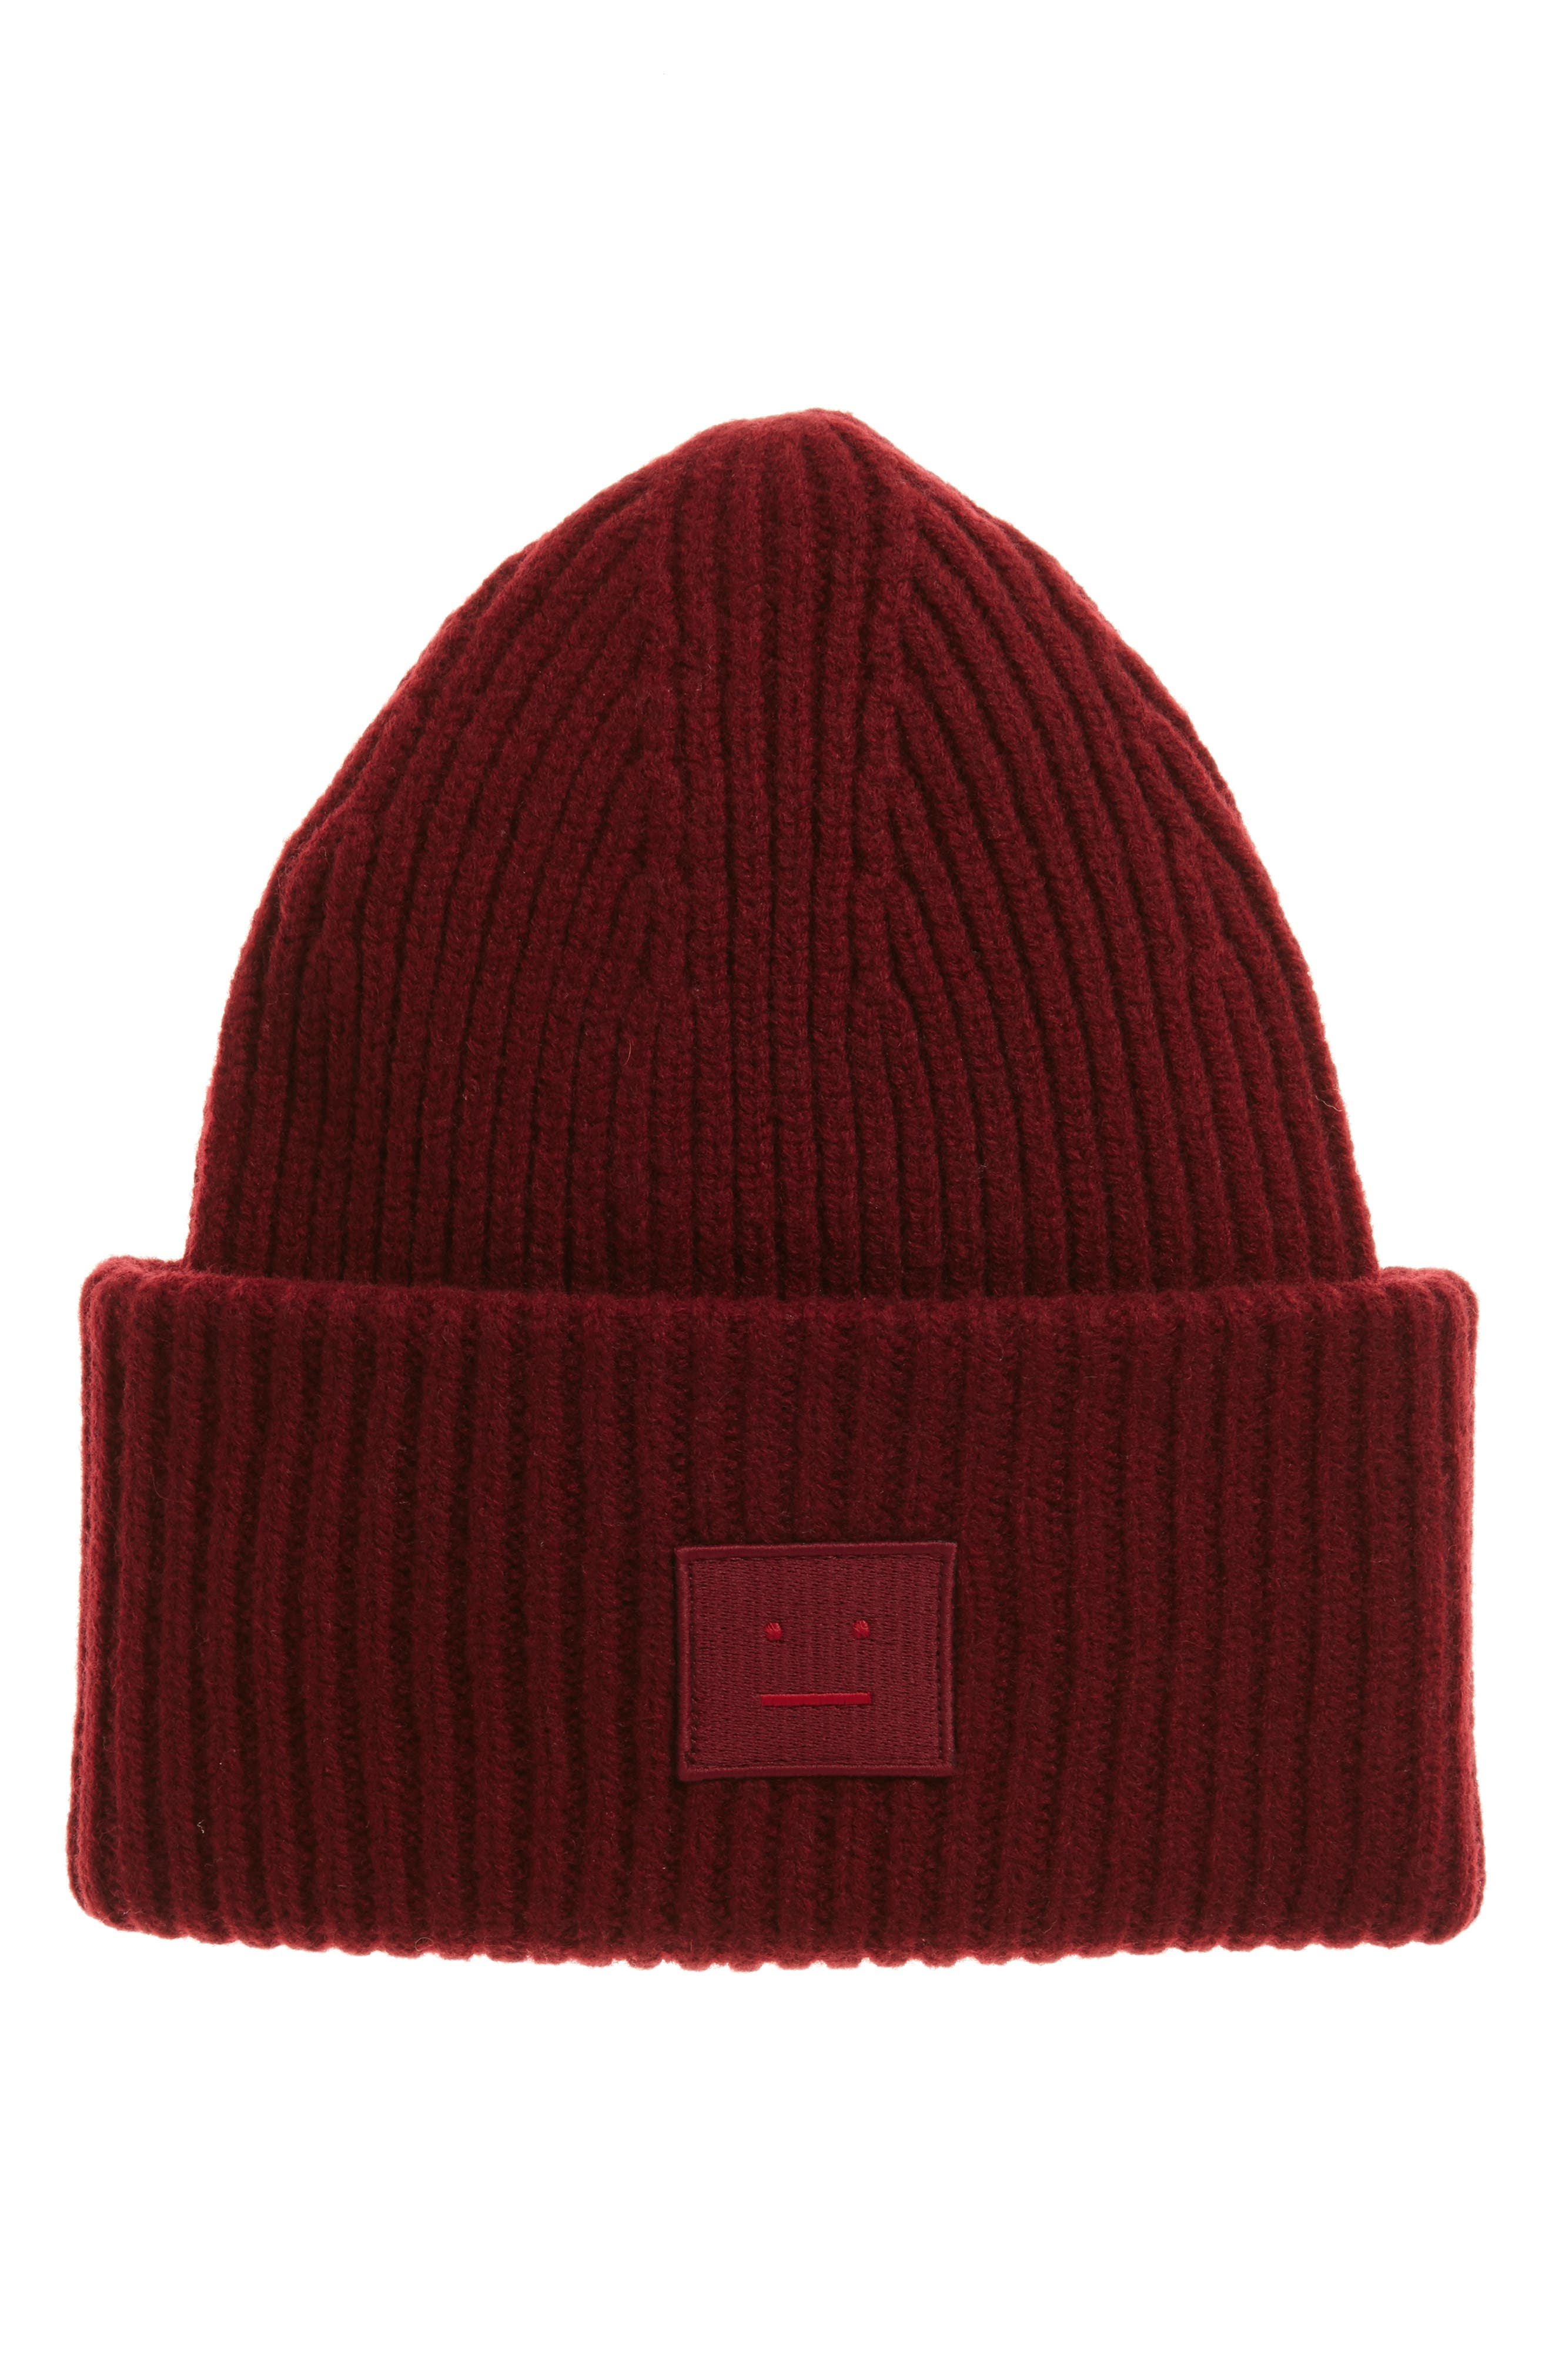 Pansy Rib Knit Wool Beanie,                         Main,                         color, Burgundy